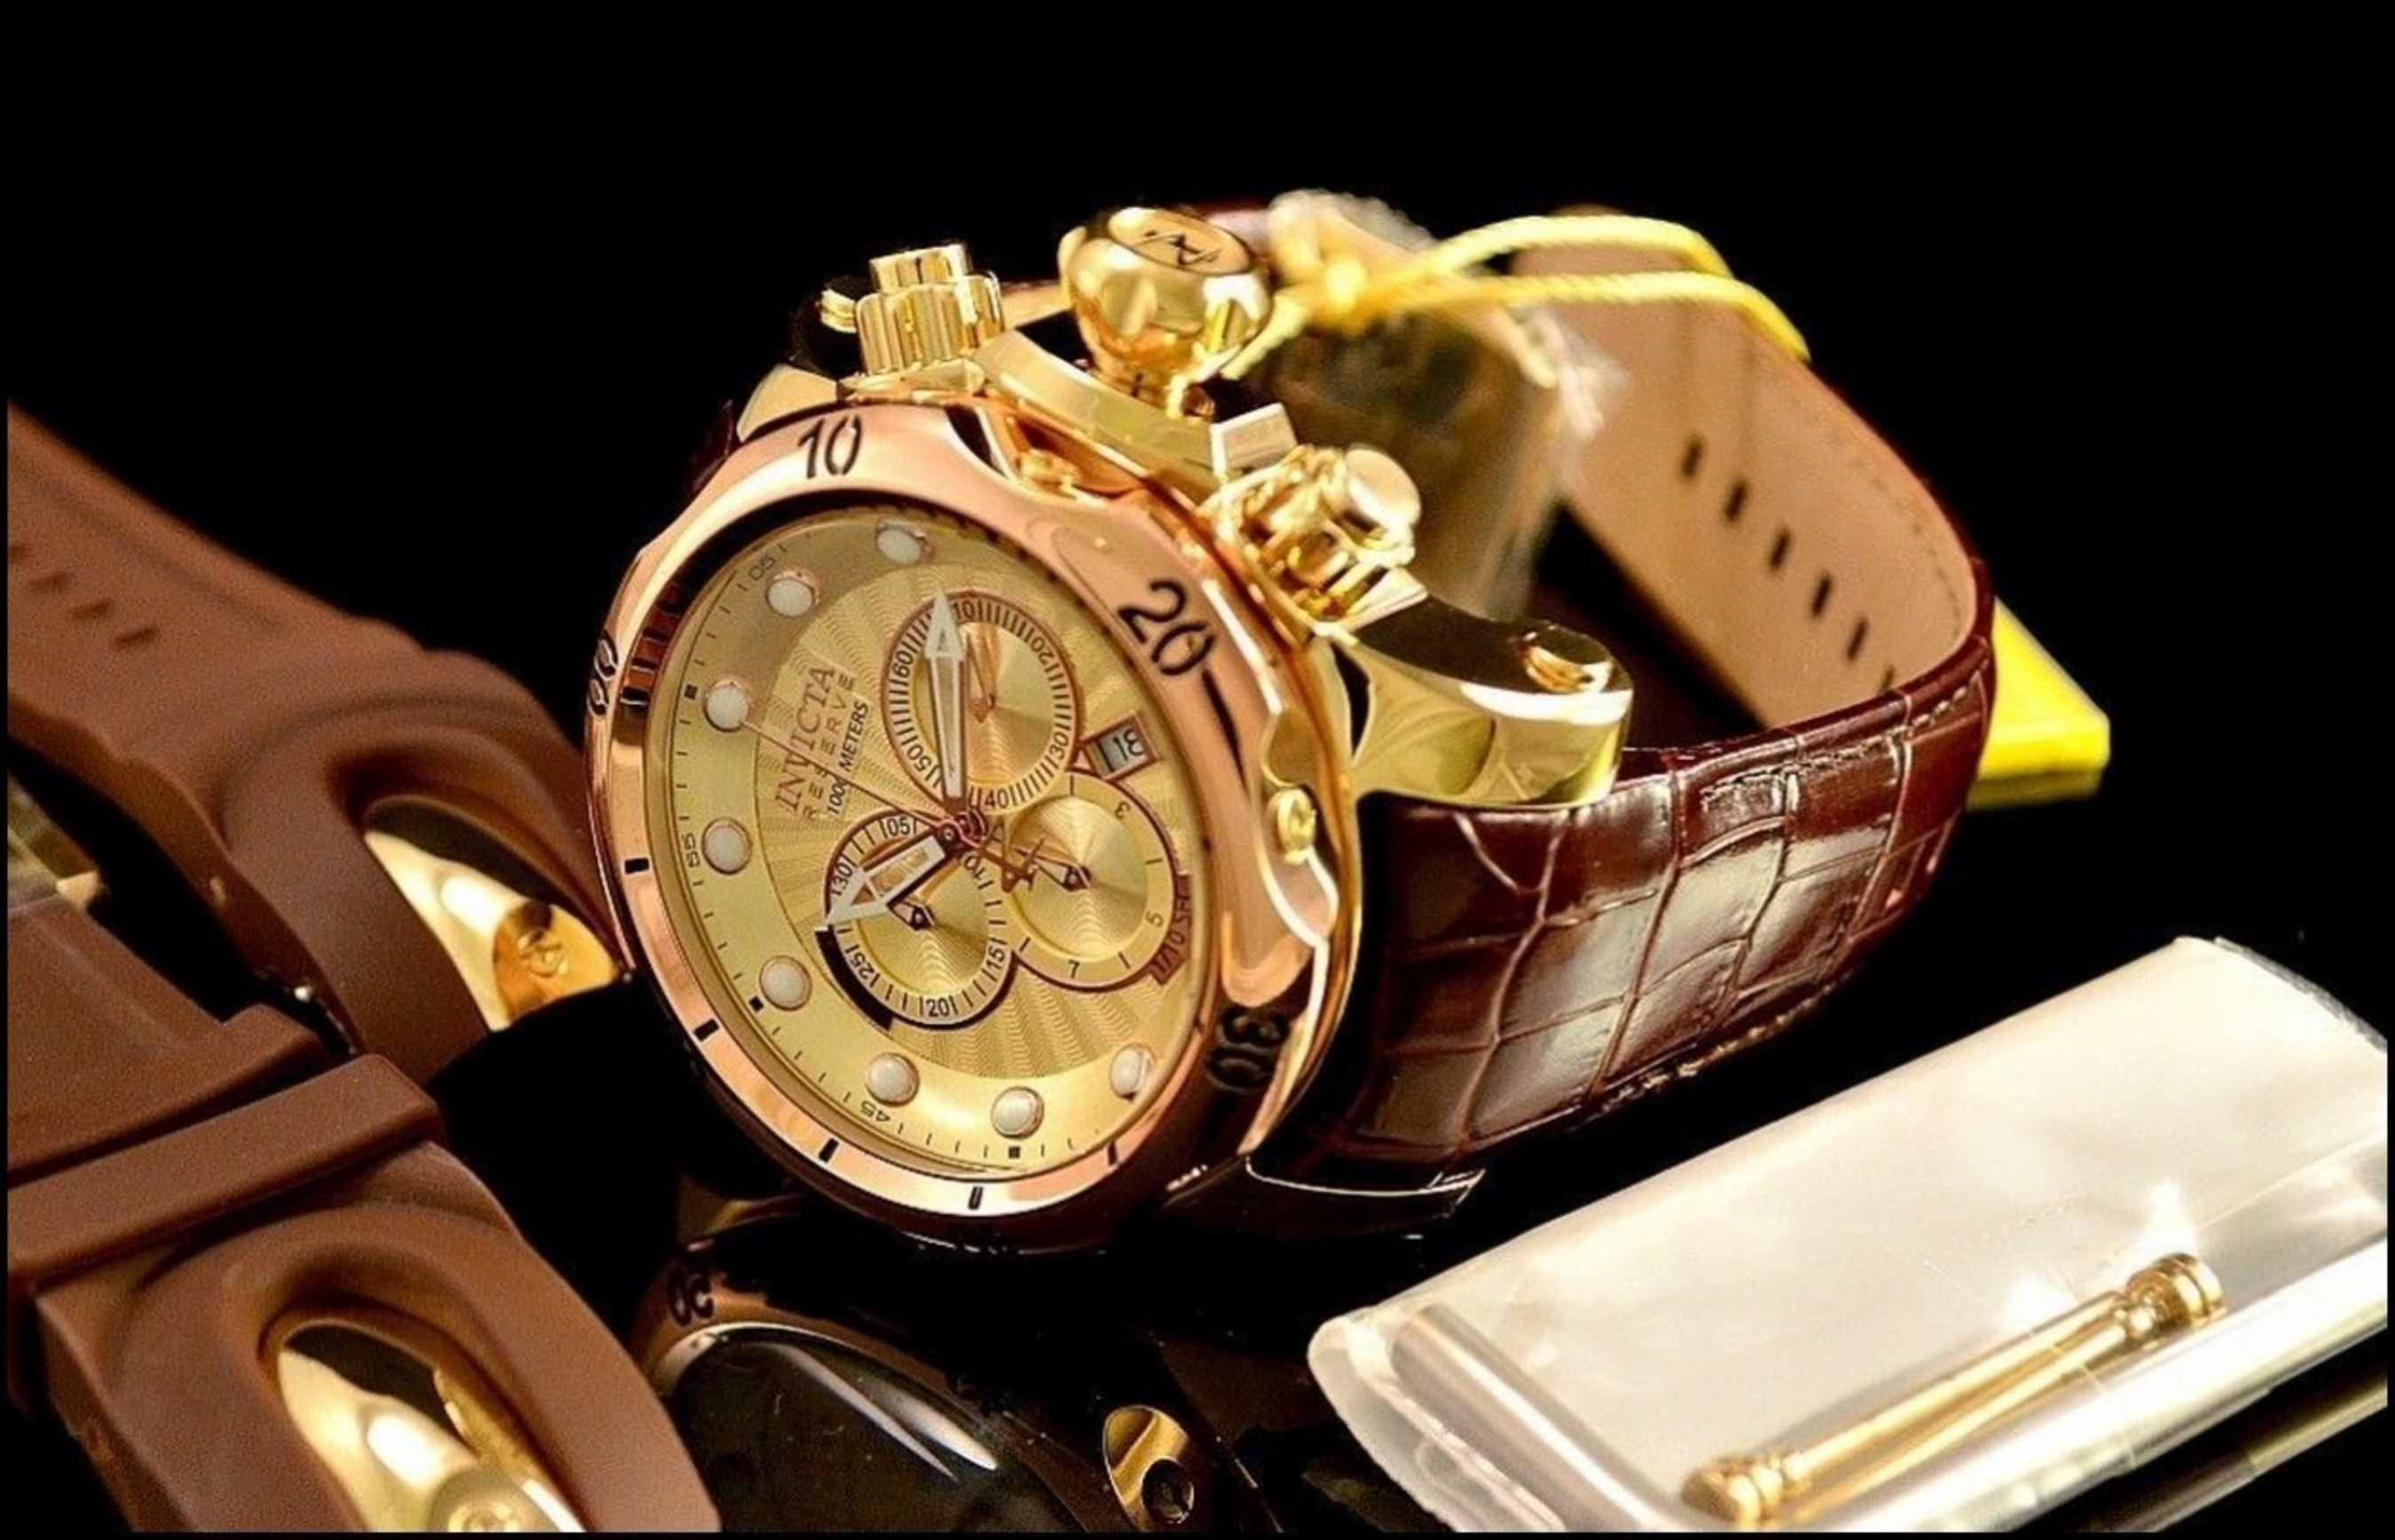 Best Invicta Watch Guide Available from Watch Review Website, graciouswatch.com